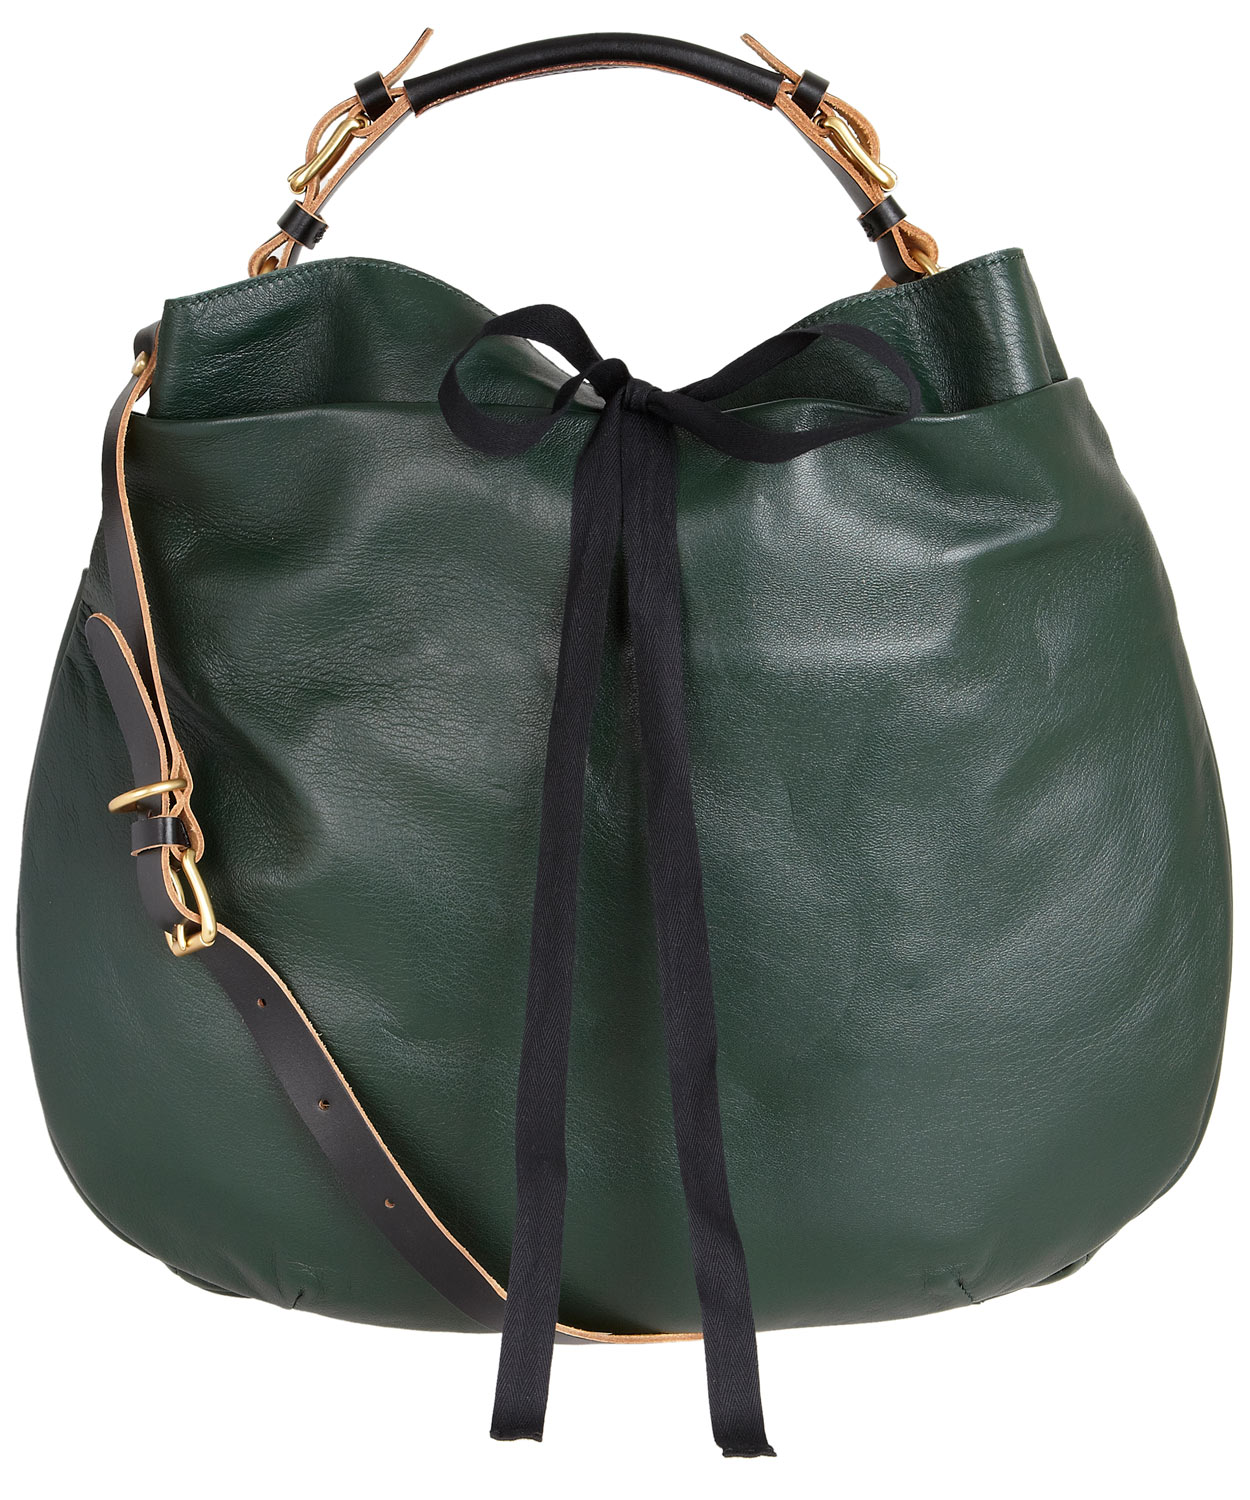 Marni Dark Green Leather Bag in Green | Lyst